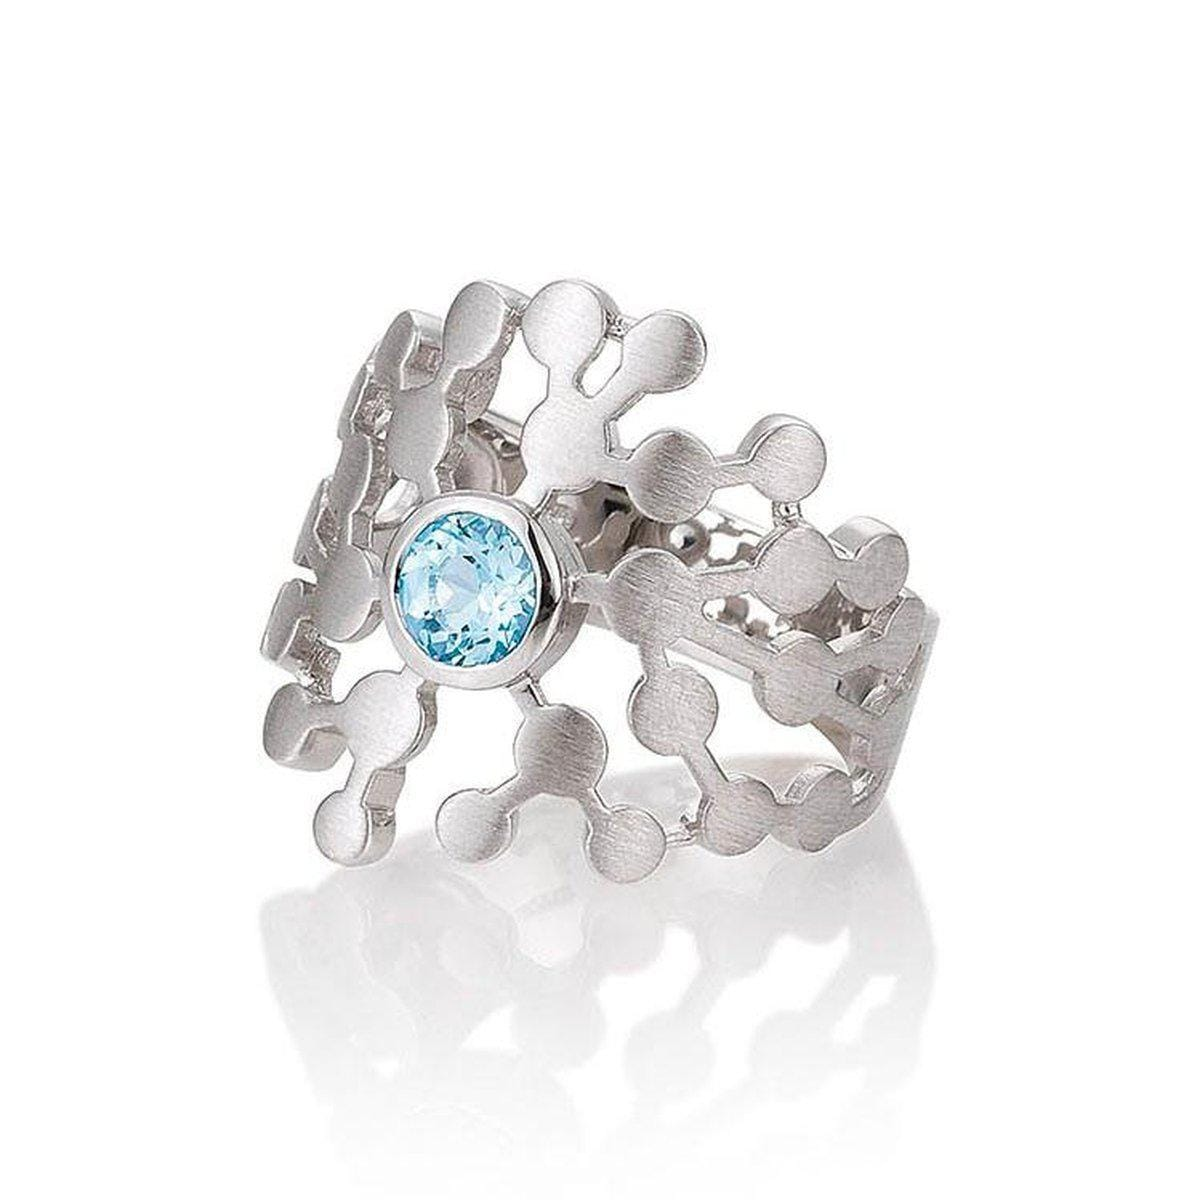 Rhodium Plated Sterling Silver Blue Topaz Ring - 42/03268-Breuning-Renee Taylor Gallery